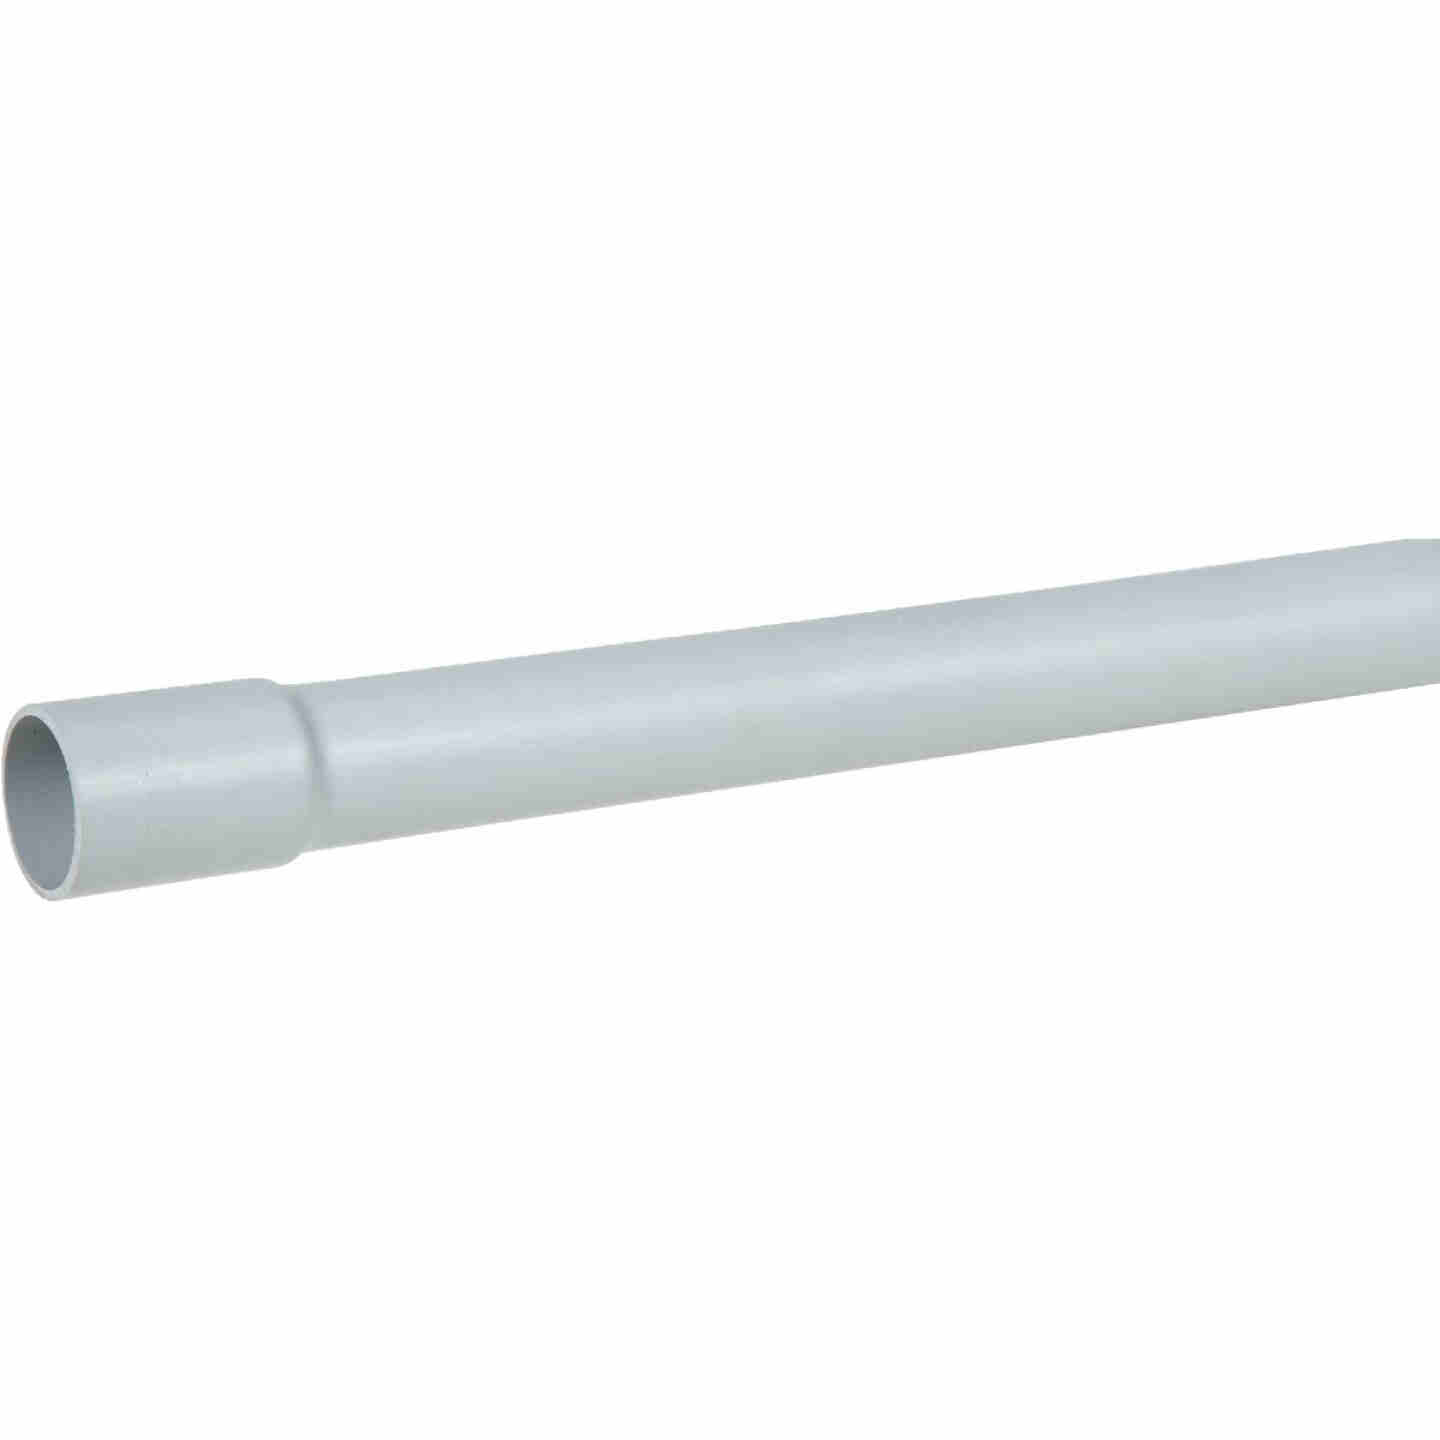 Allied 1-1/4 In. x 10 Ft. Schedule 80 PVC Conduit Image 1